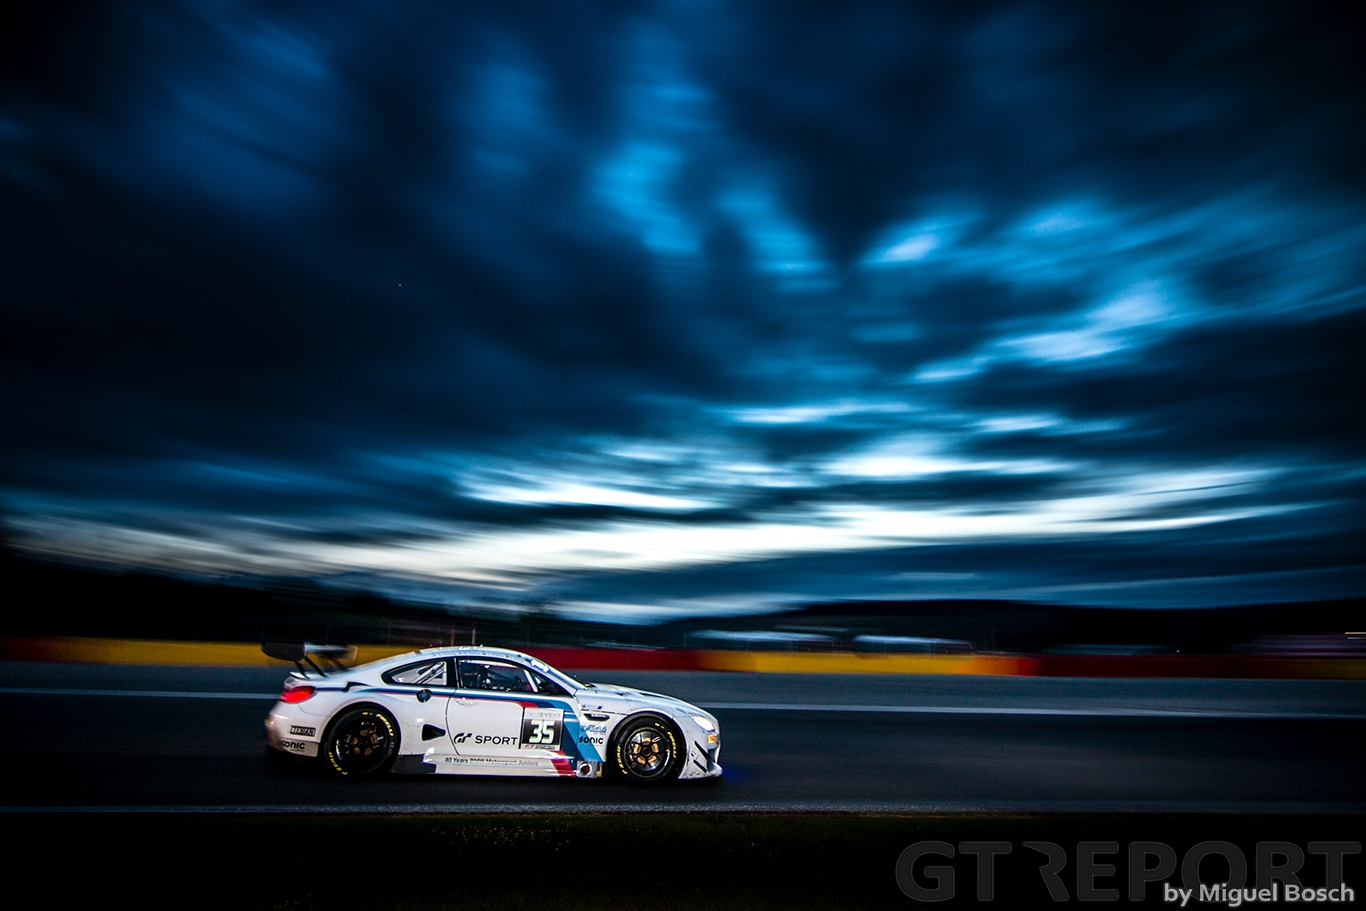 2017 Blancpain GT Spa 25 Miguel Bosch GT REPORT